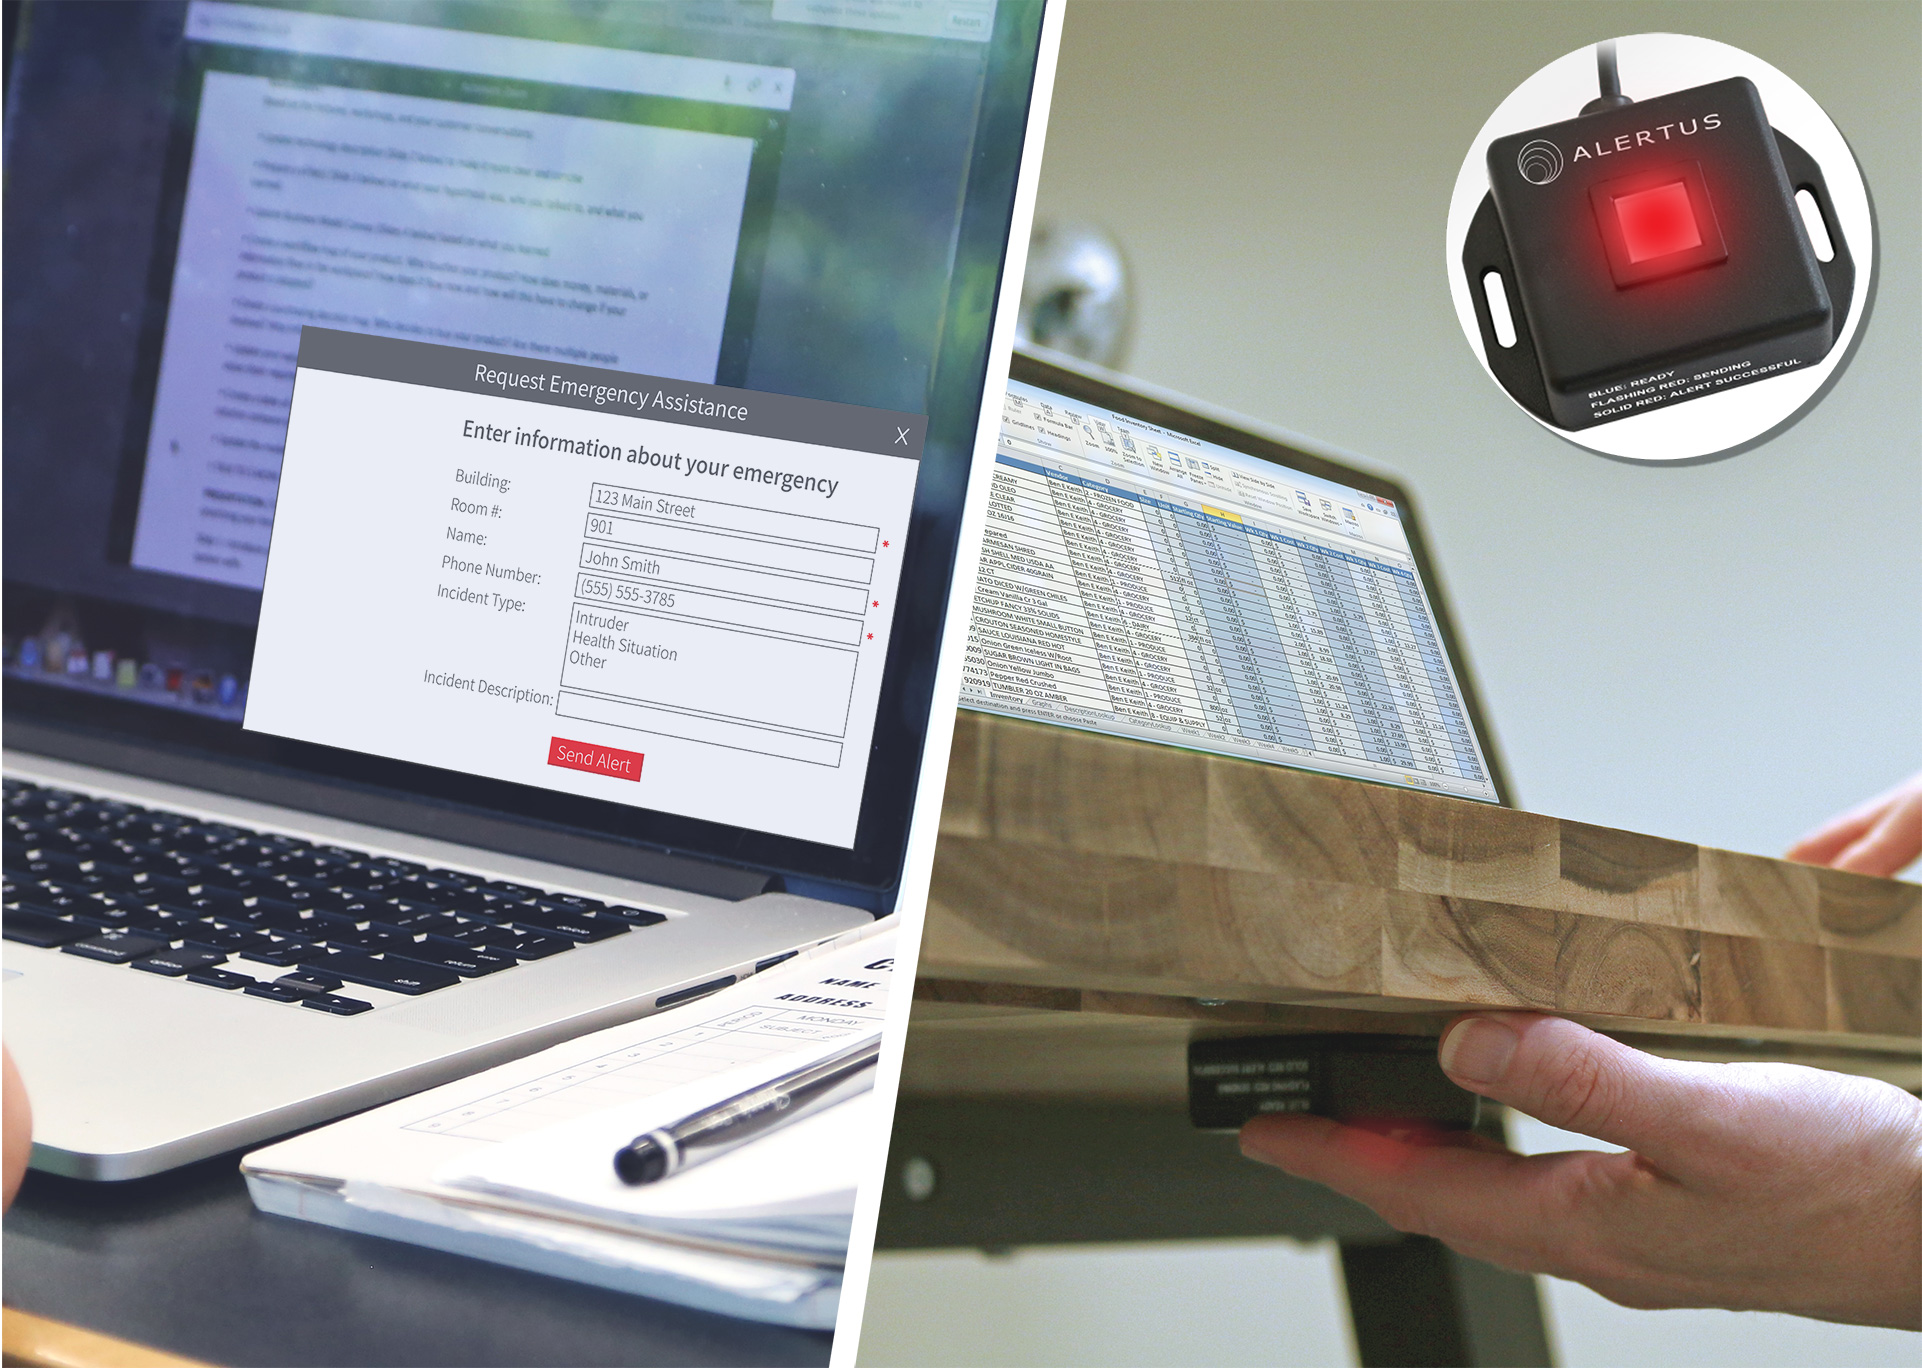 The Alertus Desktop Activator and USB Panic Button can also be configured for incident reporting